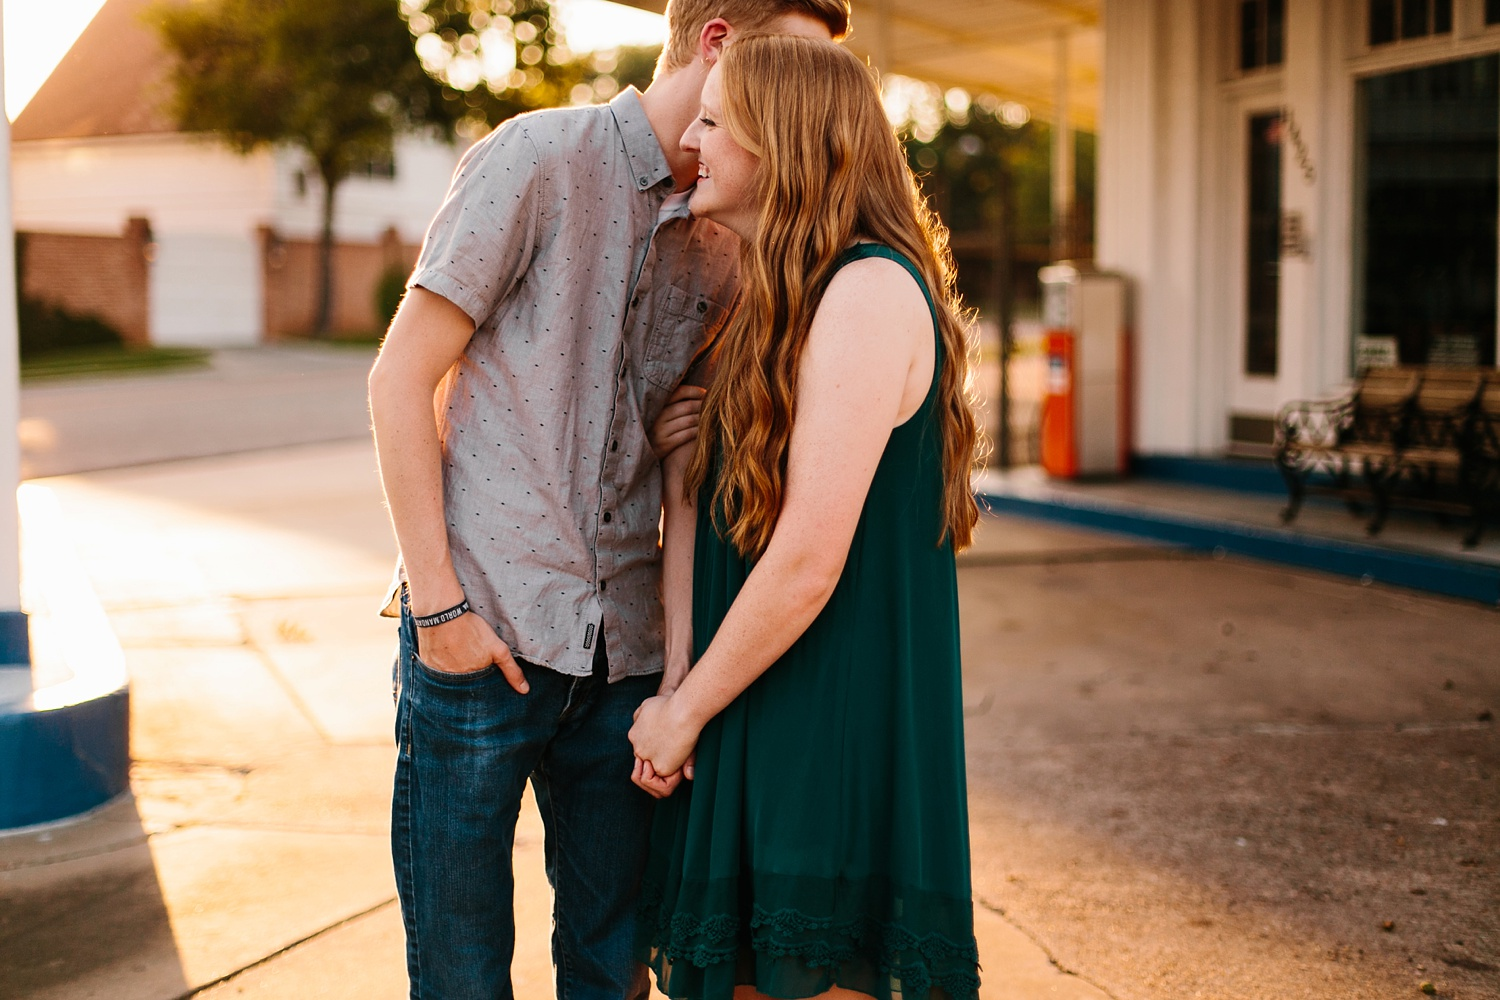 Kayla + Alex _ a joyful and loving engagement shoot in Waco, Texas by North Texas Wedding Photographer Rachel Meagan Photography _40